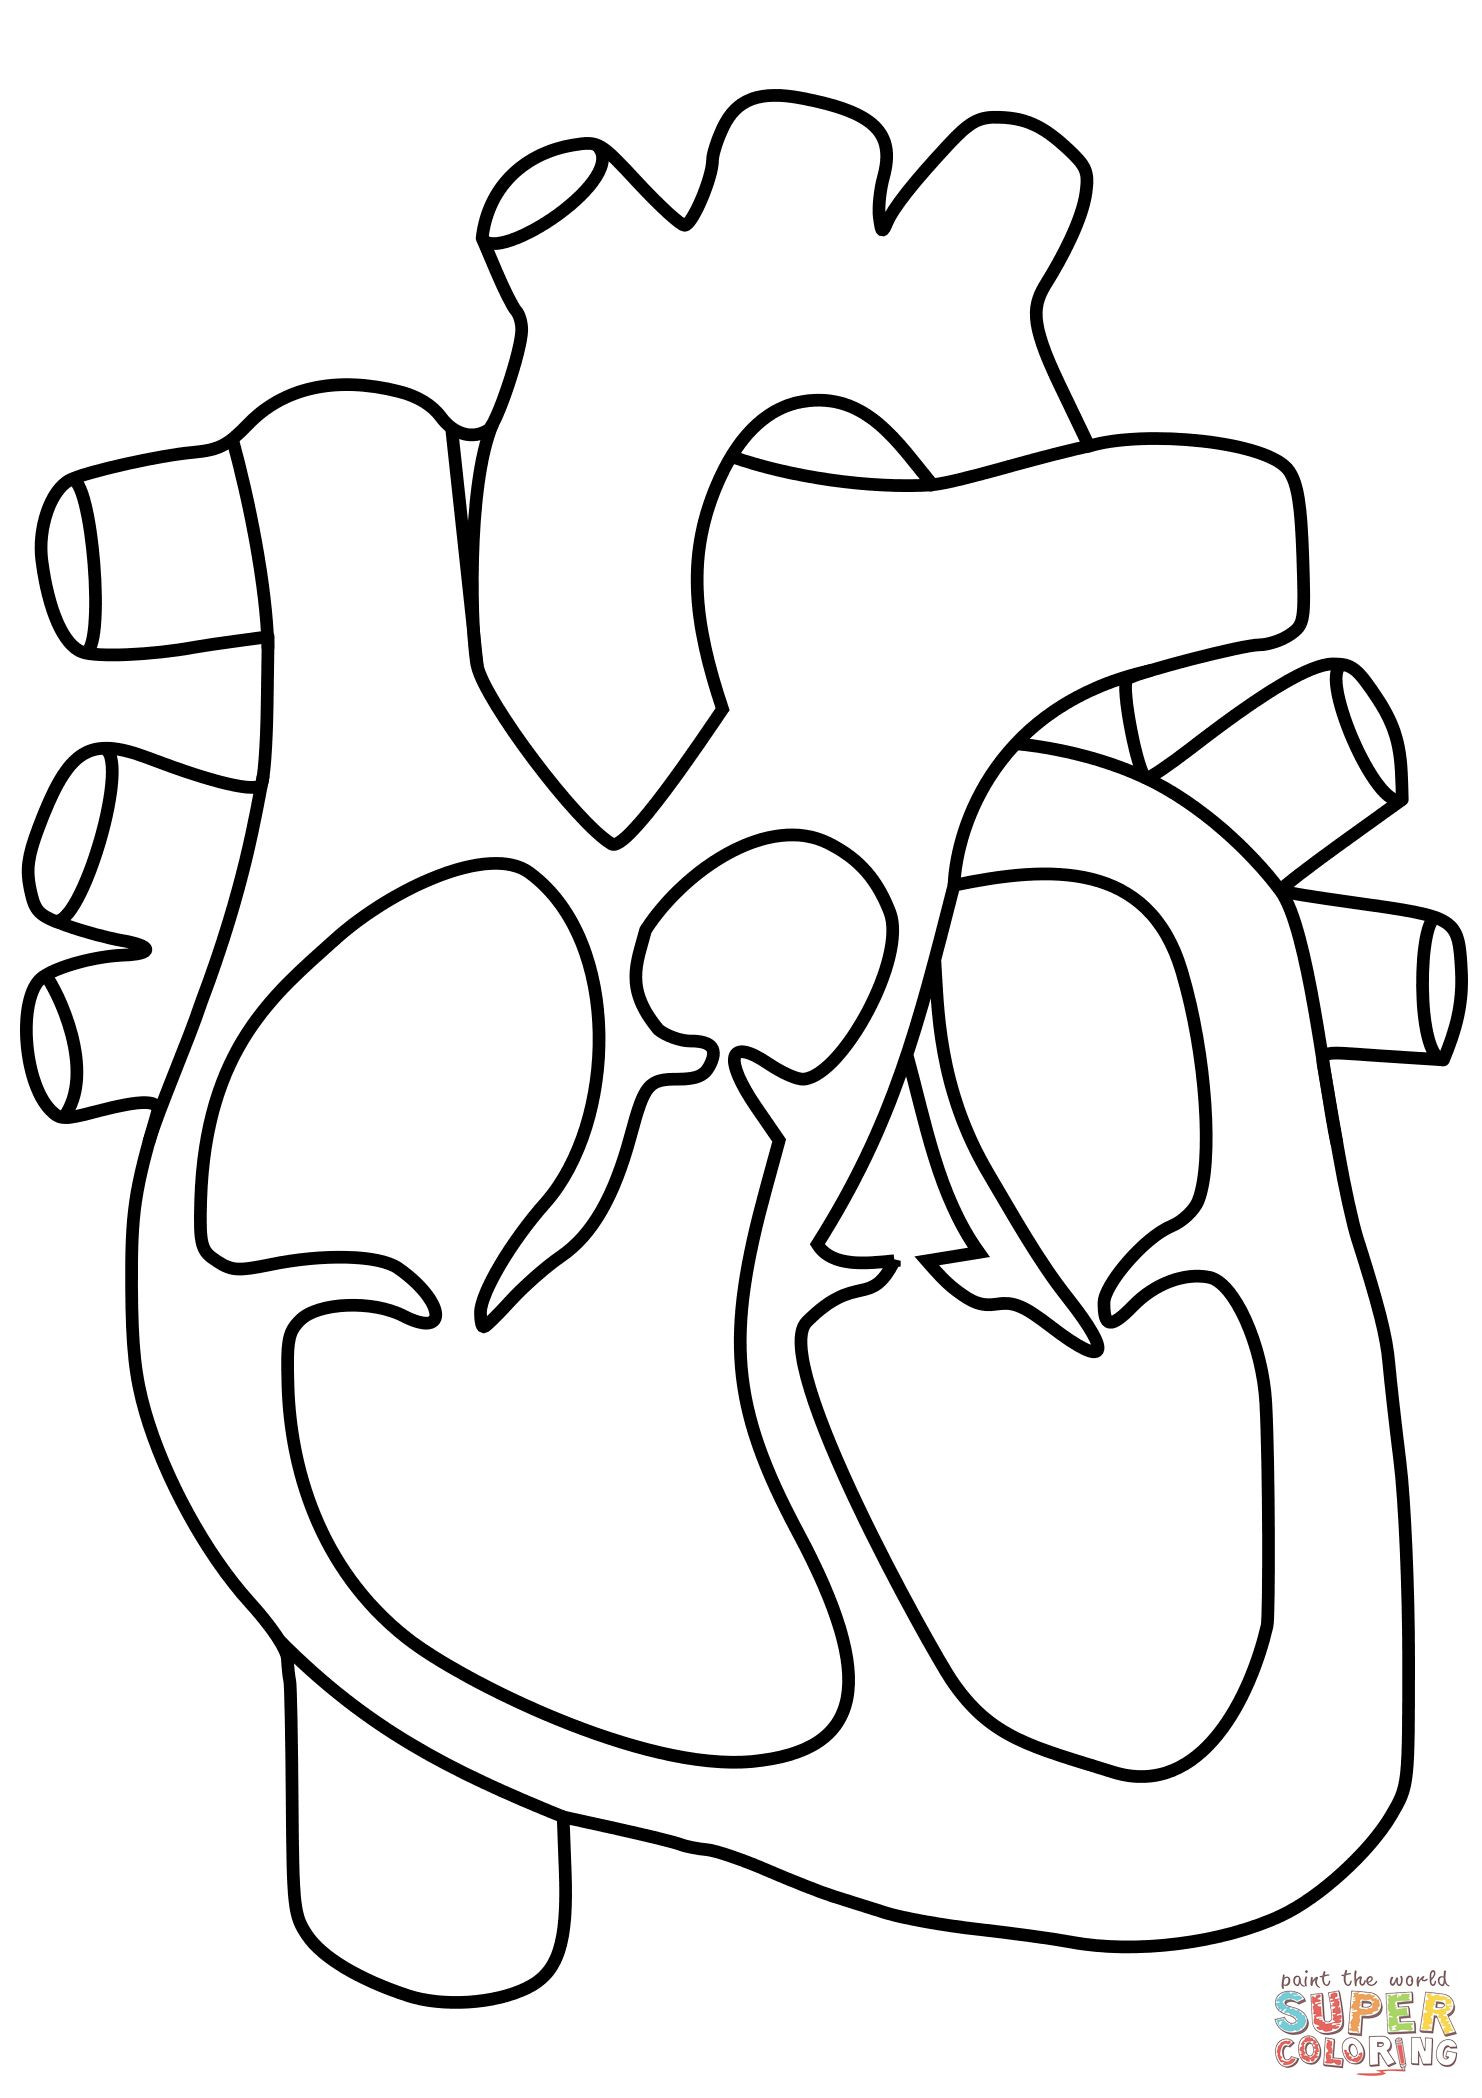 Human Heart Coloring Worksheet Human Heart Coloring Pages Human Heart Coloring Page Human